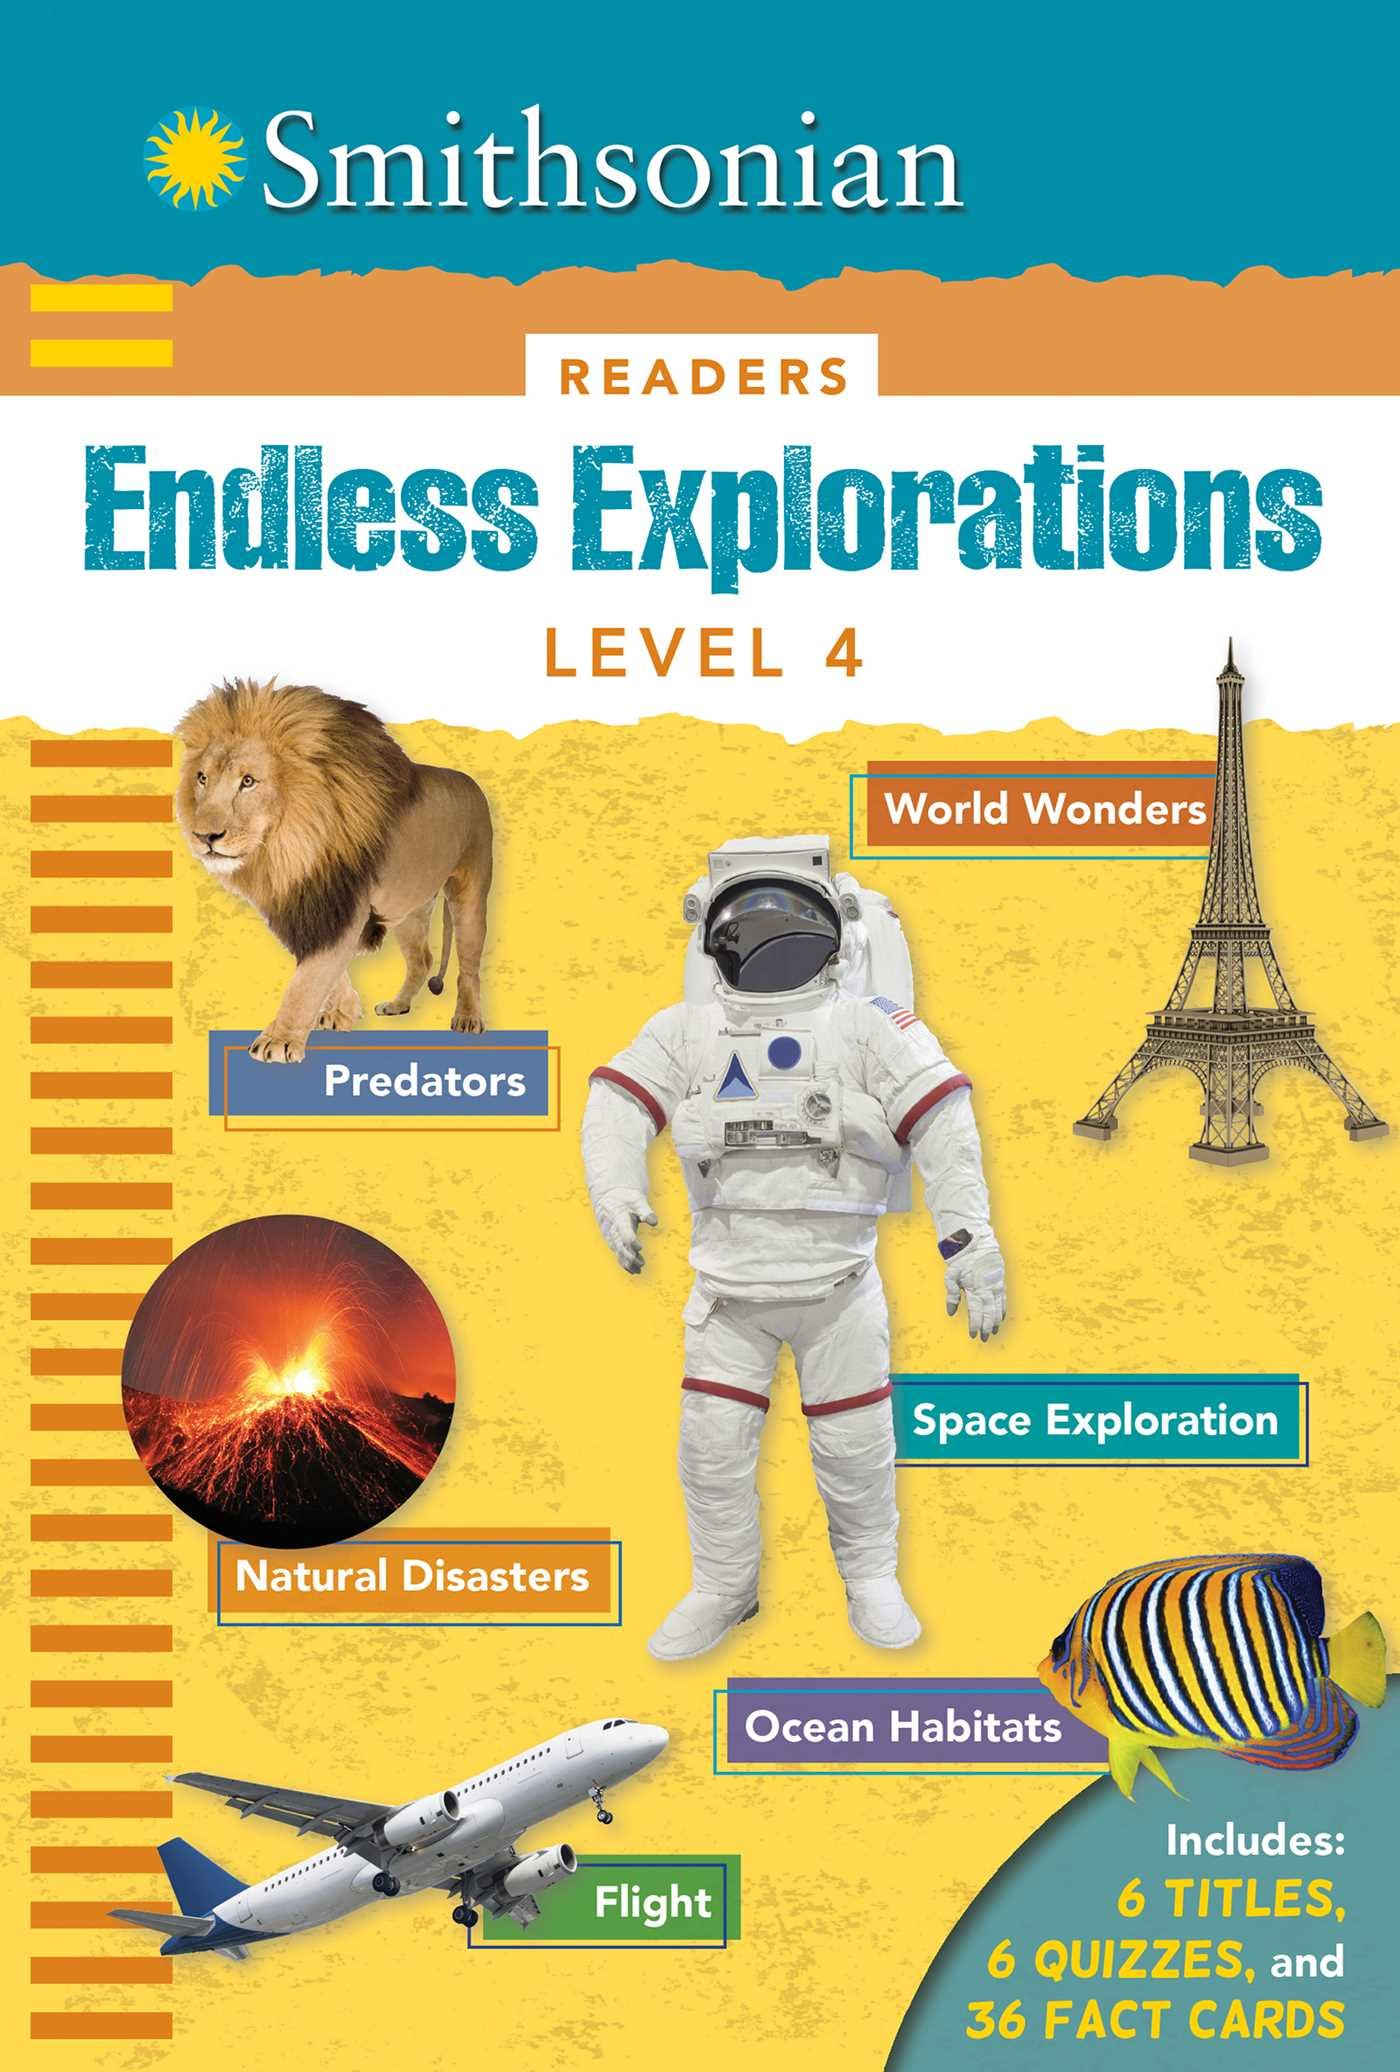 Smithsonian Readers: Endless Explorations Level 4 (Smithsonian Leveled Readers) by Silver Dolphin Books